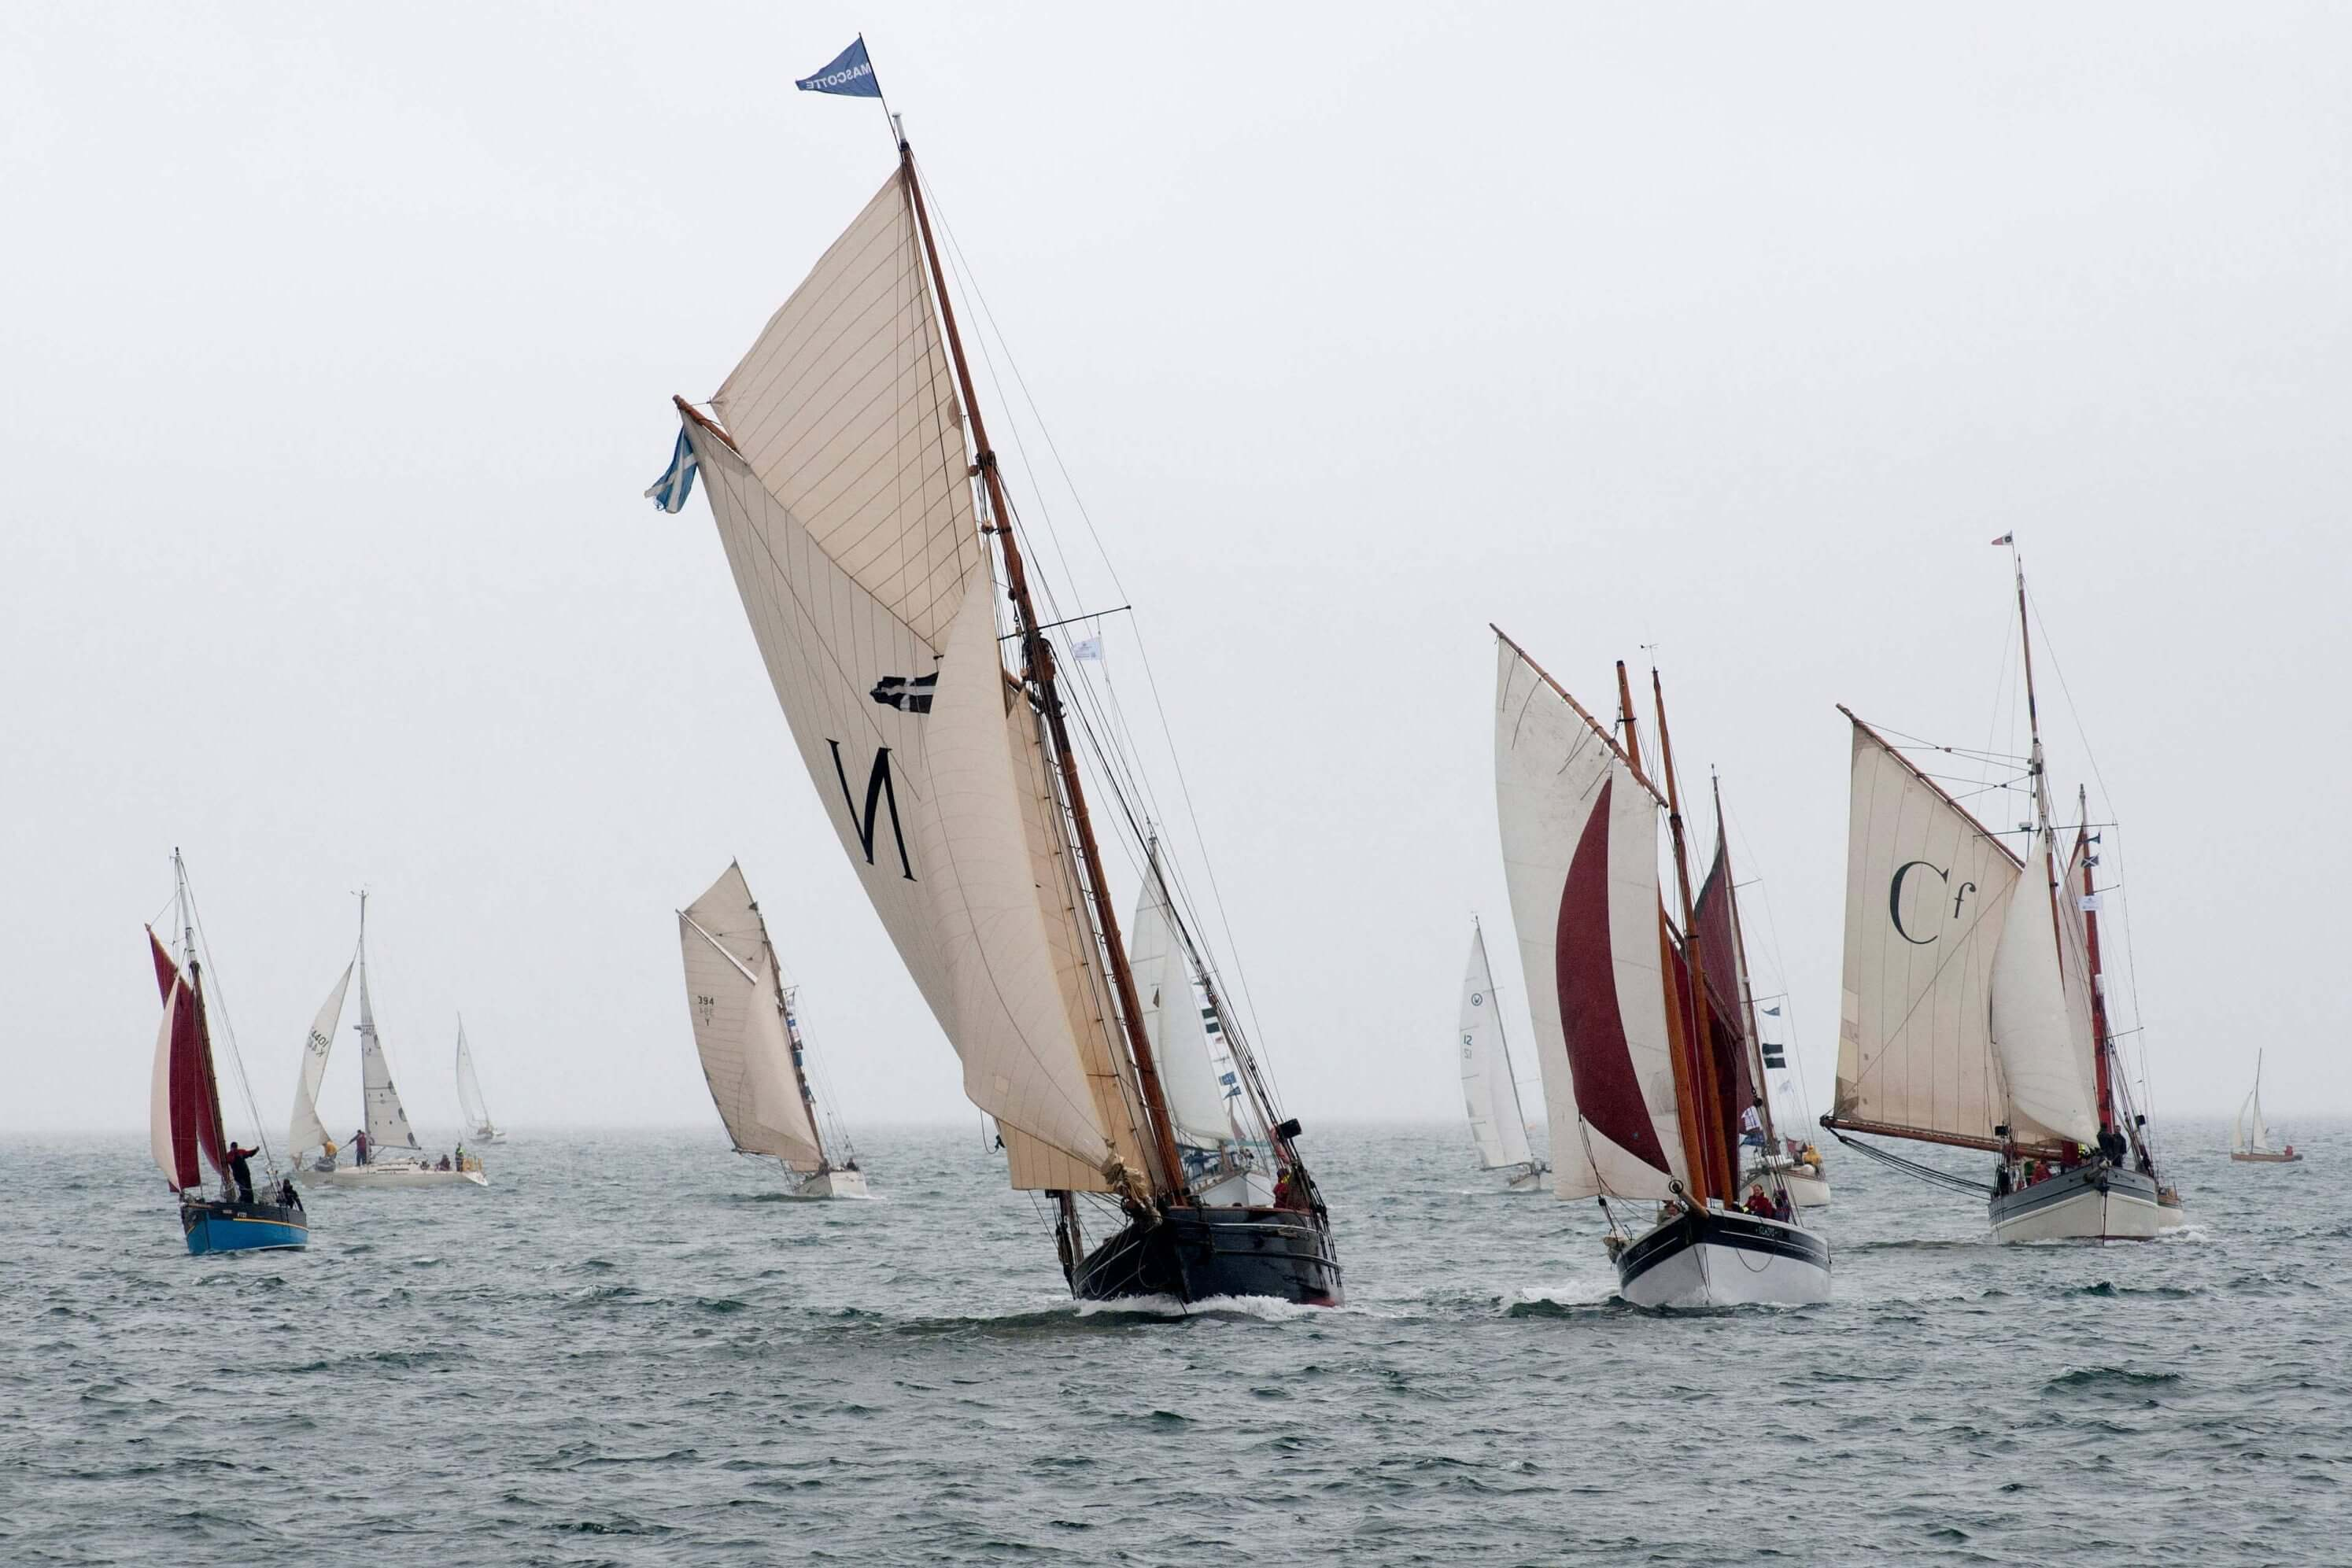 falmouth classics, parade of sail, sailing, on the water, lovefalmouth, love falmouth, falmouth, photography competition, #LoveFalmouth, #LoveTheSea